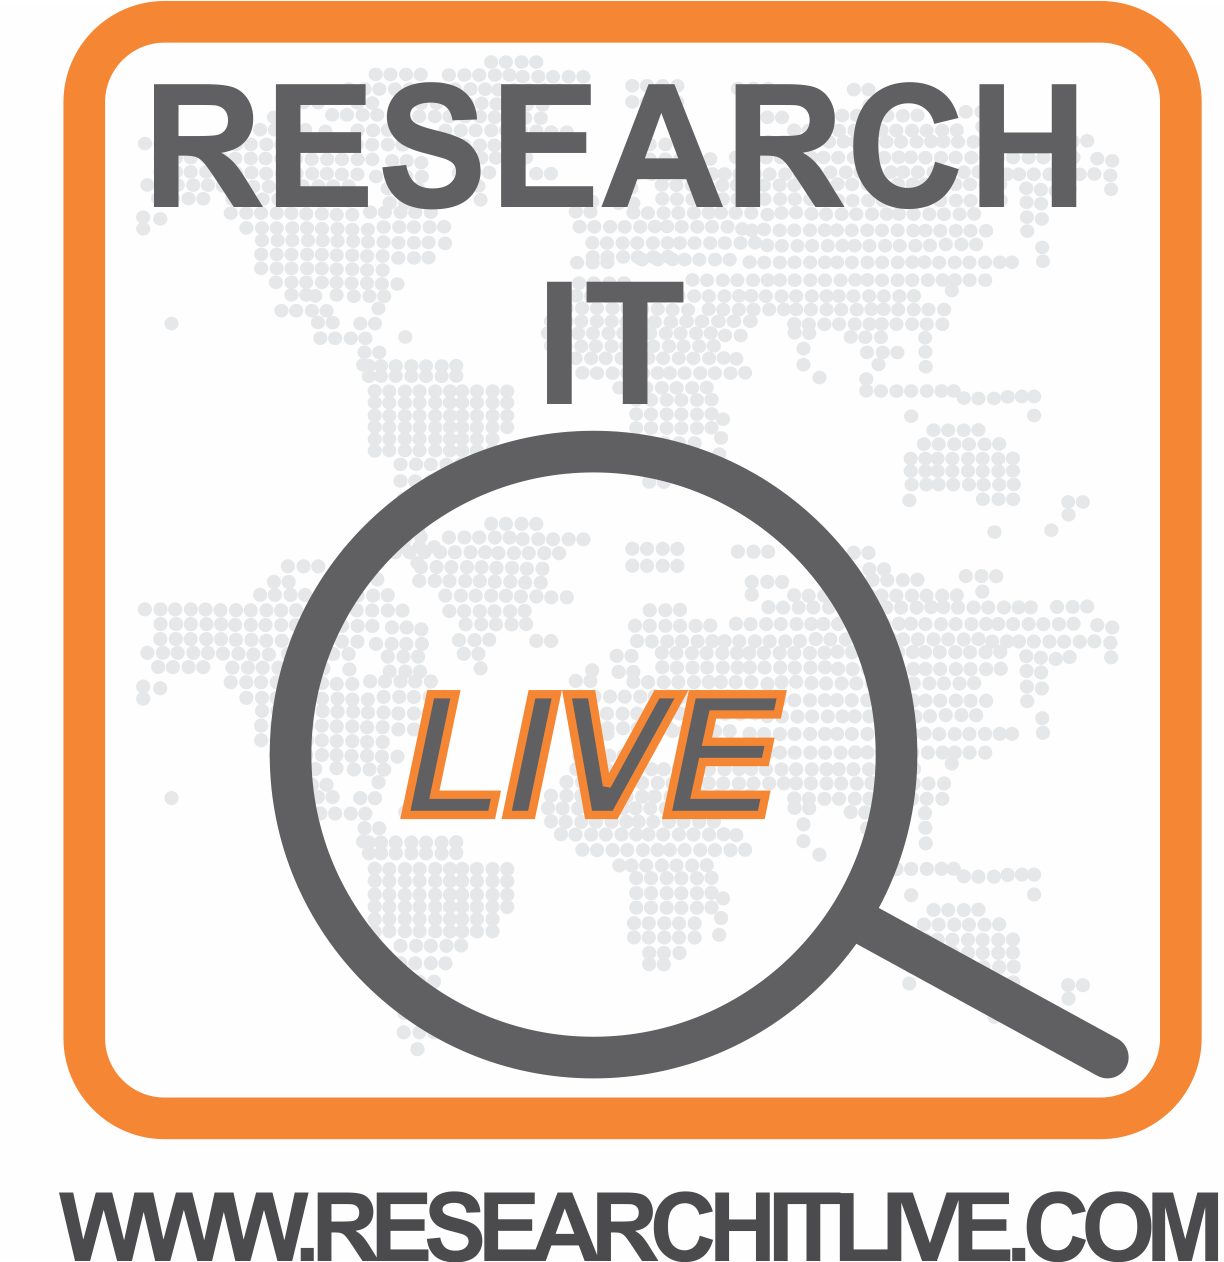 researchitlive logo